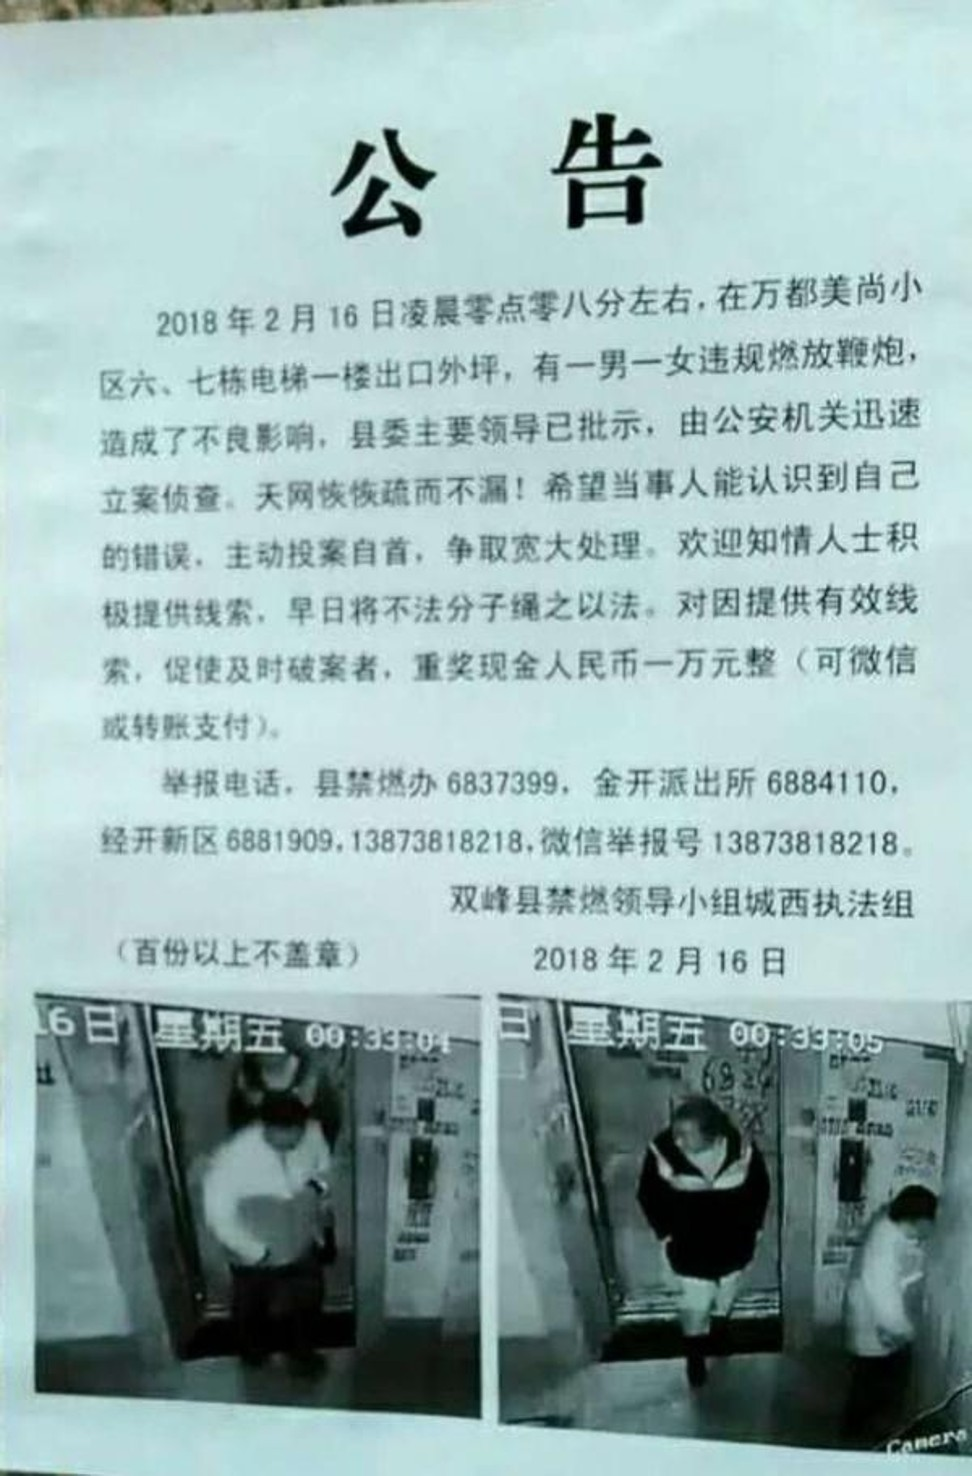 """A county-level law enforcement team was criticised for putting up """"Wanted"""" posters for two people accused of lighting fireworks in contravention of a local ban. Photo: Sina"""